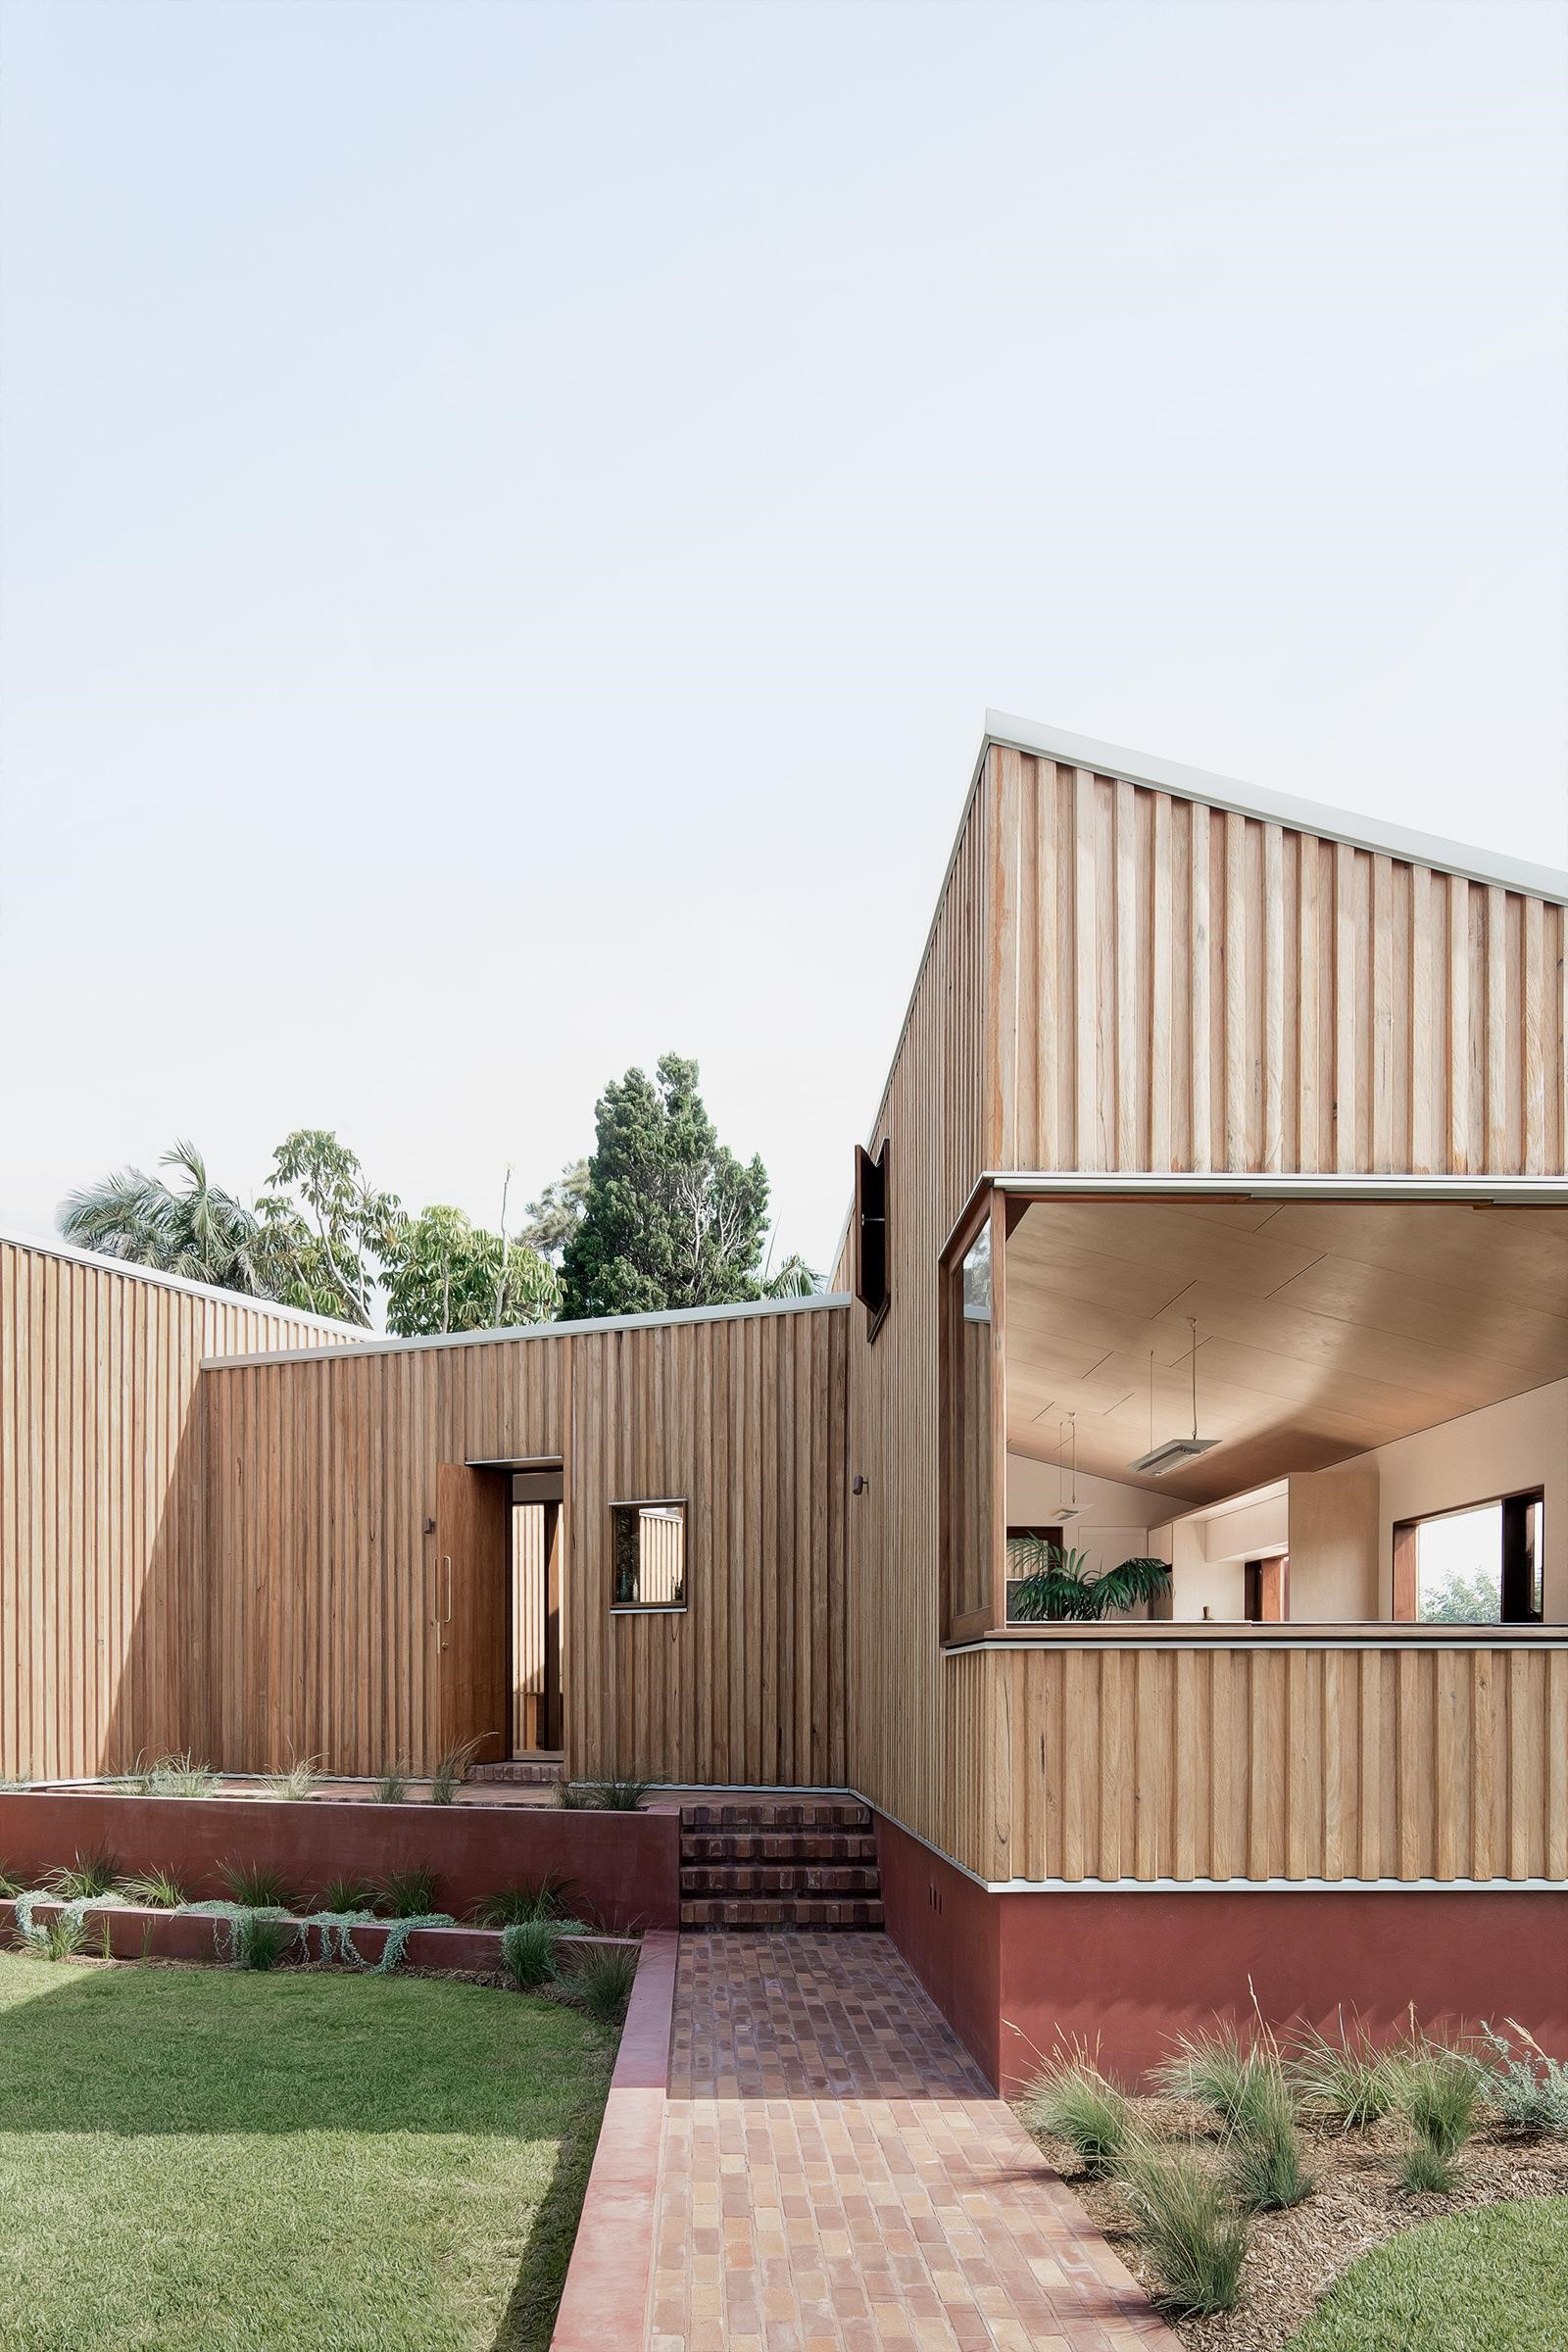 Gallery Of The Three Piece House By Trias Studio Local Australian Residential Architecture & Interiors Sydney, Nsw Image 6